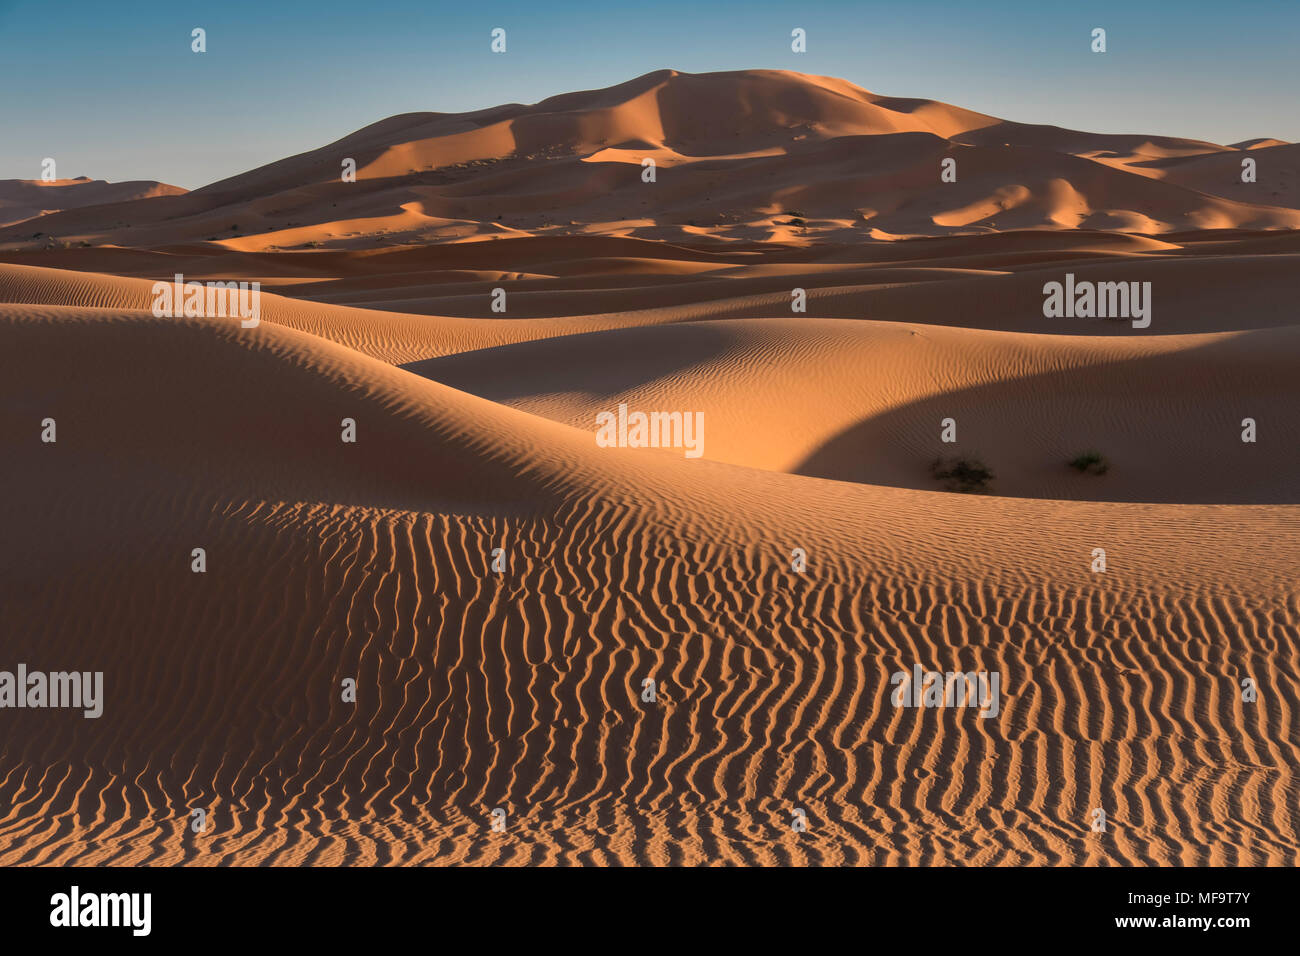 Mer de Sable, Erg Chebbi dunes du désert, Sahara occidental, Maroc Photo Stock